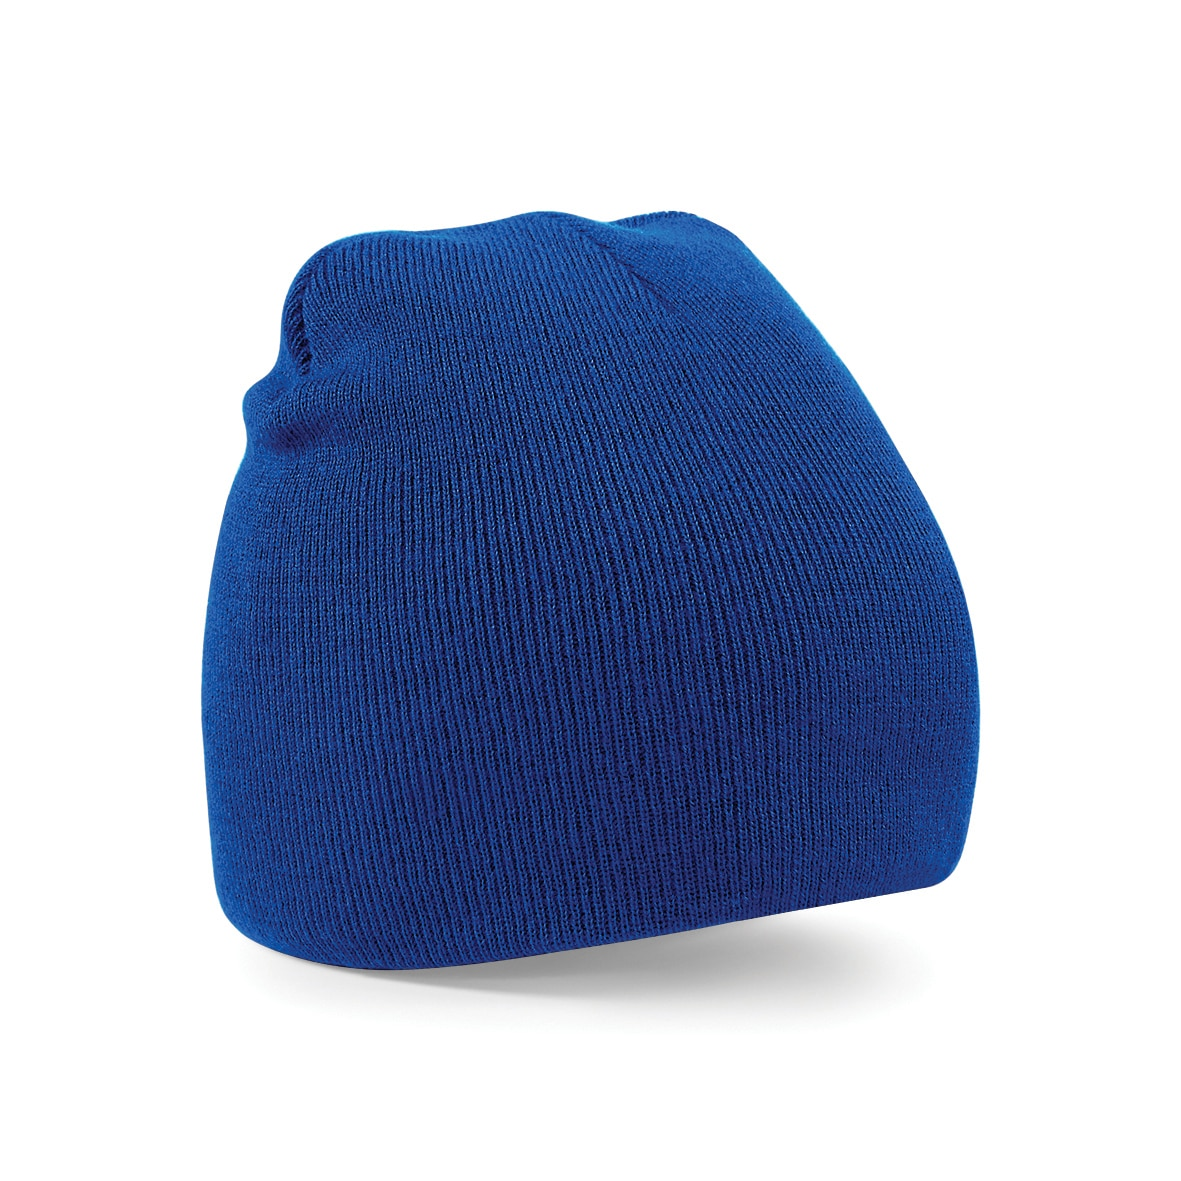 Royal Blue Embroidered Personalised Beanies from Jageto Embroidery and Print in Essex, UK